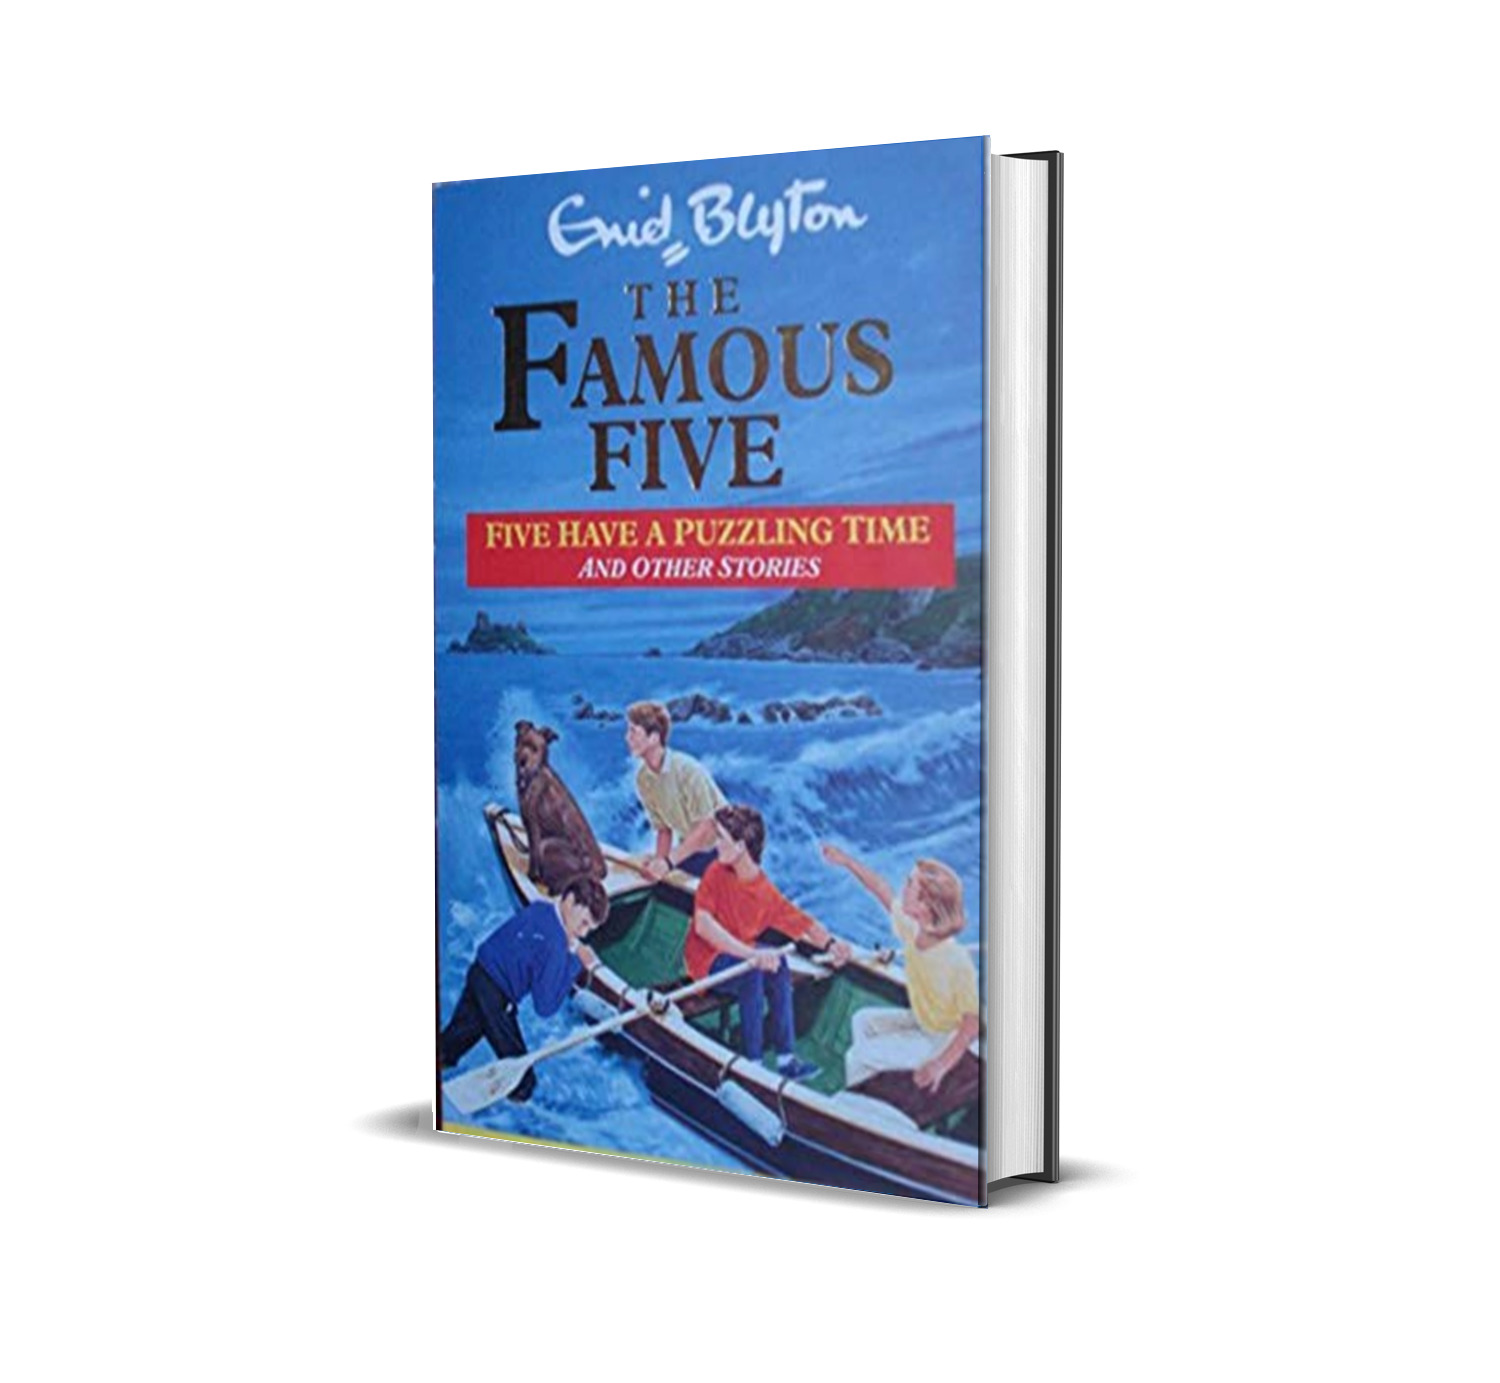 Five have a puzzling time and other stories:the famous five book 22- Enid Blyton